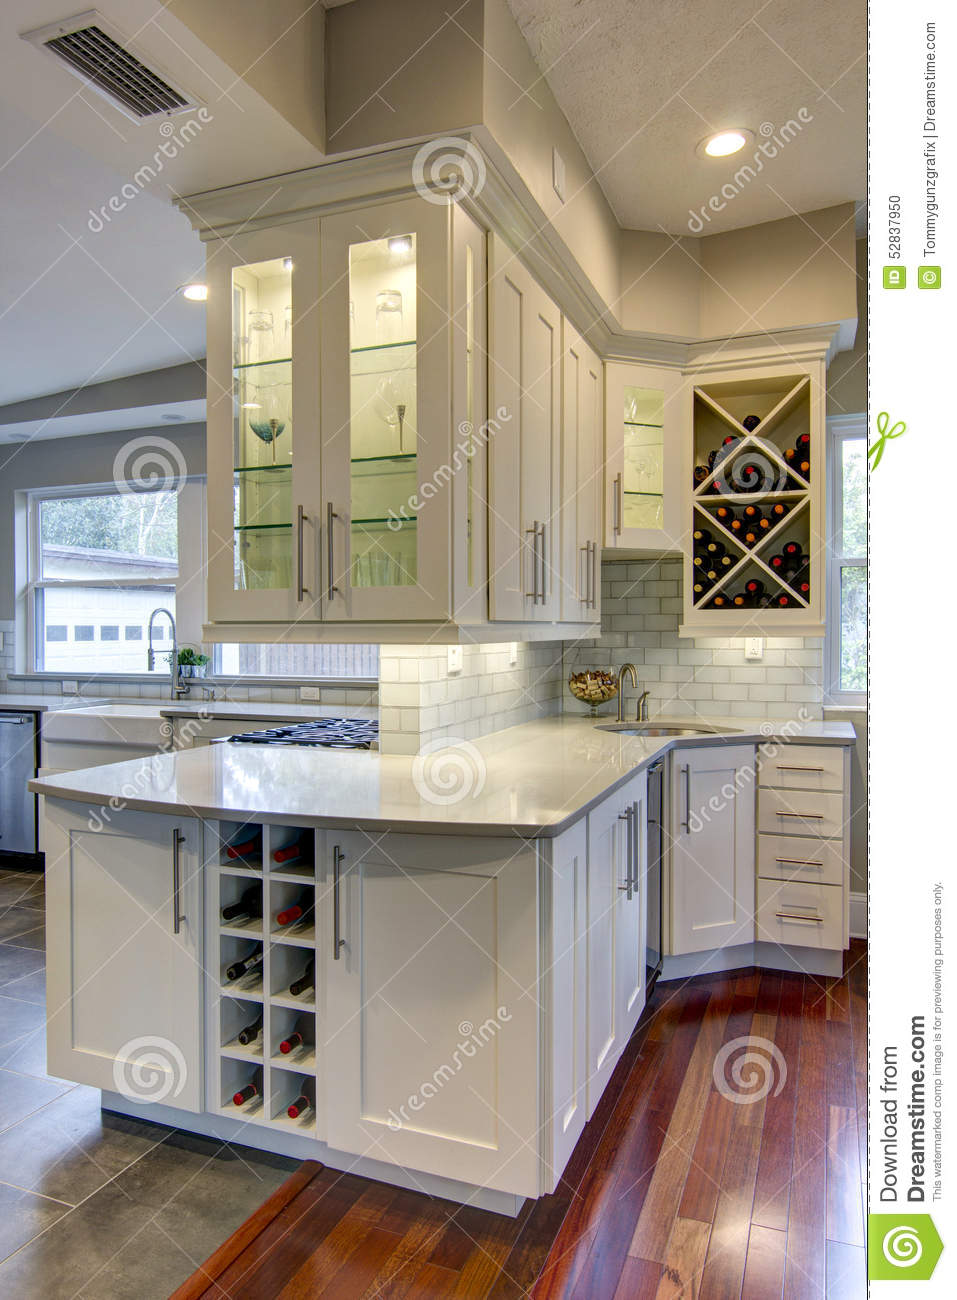 kitchen wine rack delta touchless faucet stock photo image of chairs granite 52837950 built in storage